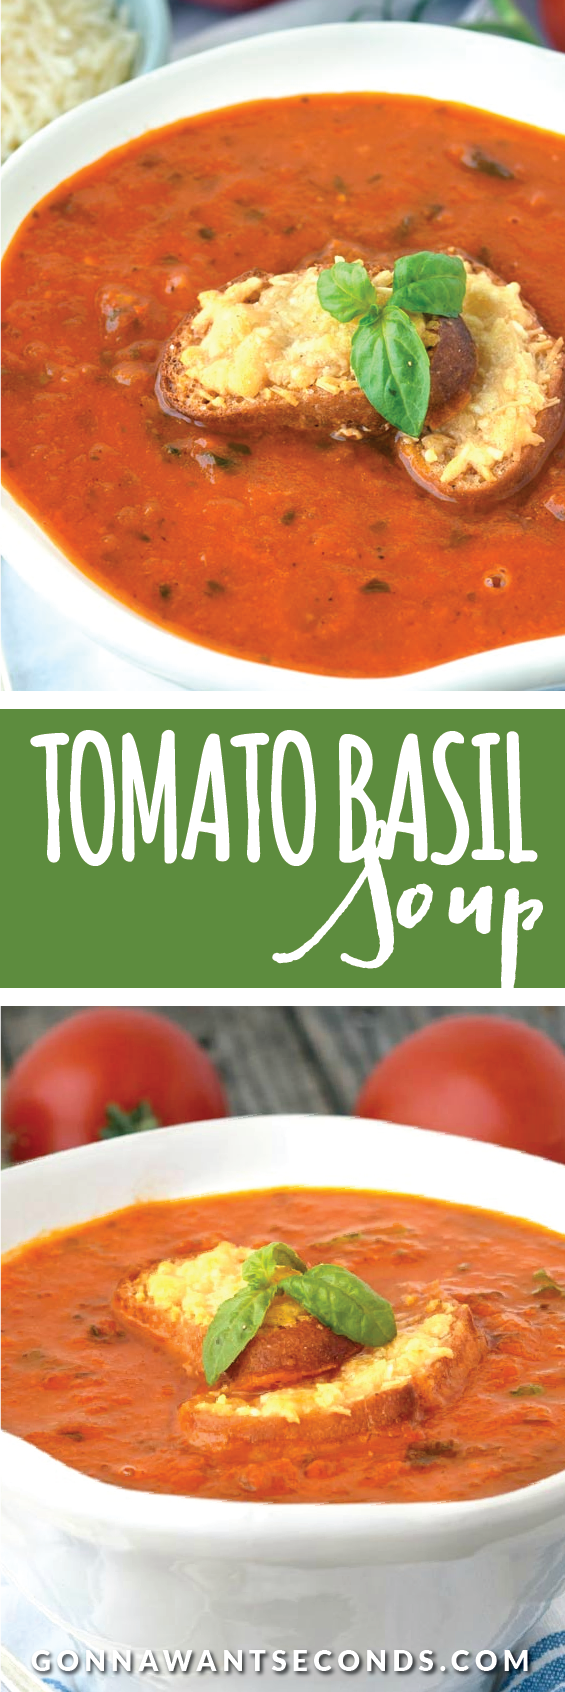 This thick, rich Tomato Basil Soup is loaded with flavor. Made with roasted tomatoes, then to instensify the flavor, its fortified with canned tomatoes.